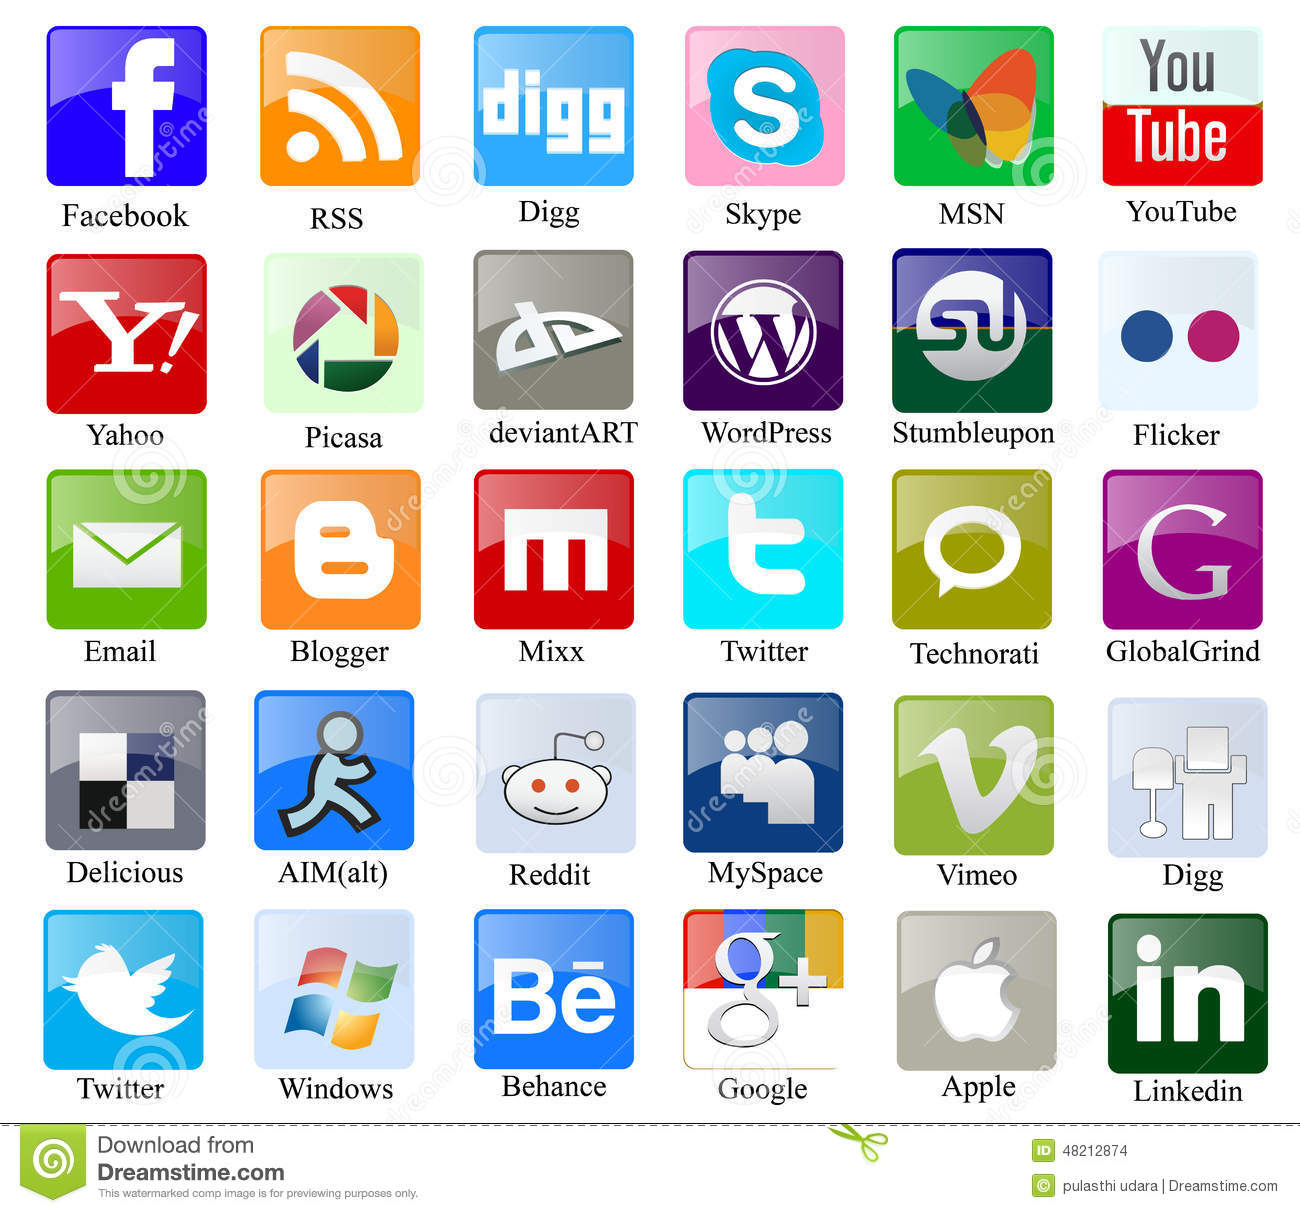 15 All Social Media Icons With Names Images - Social Media ...